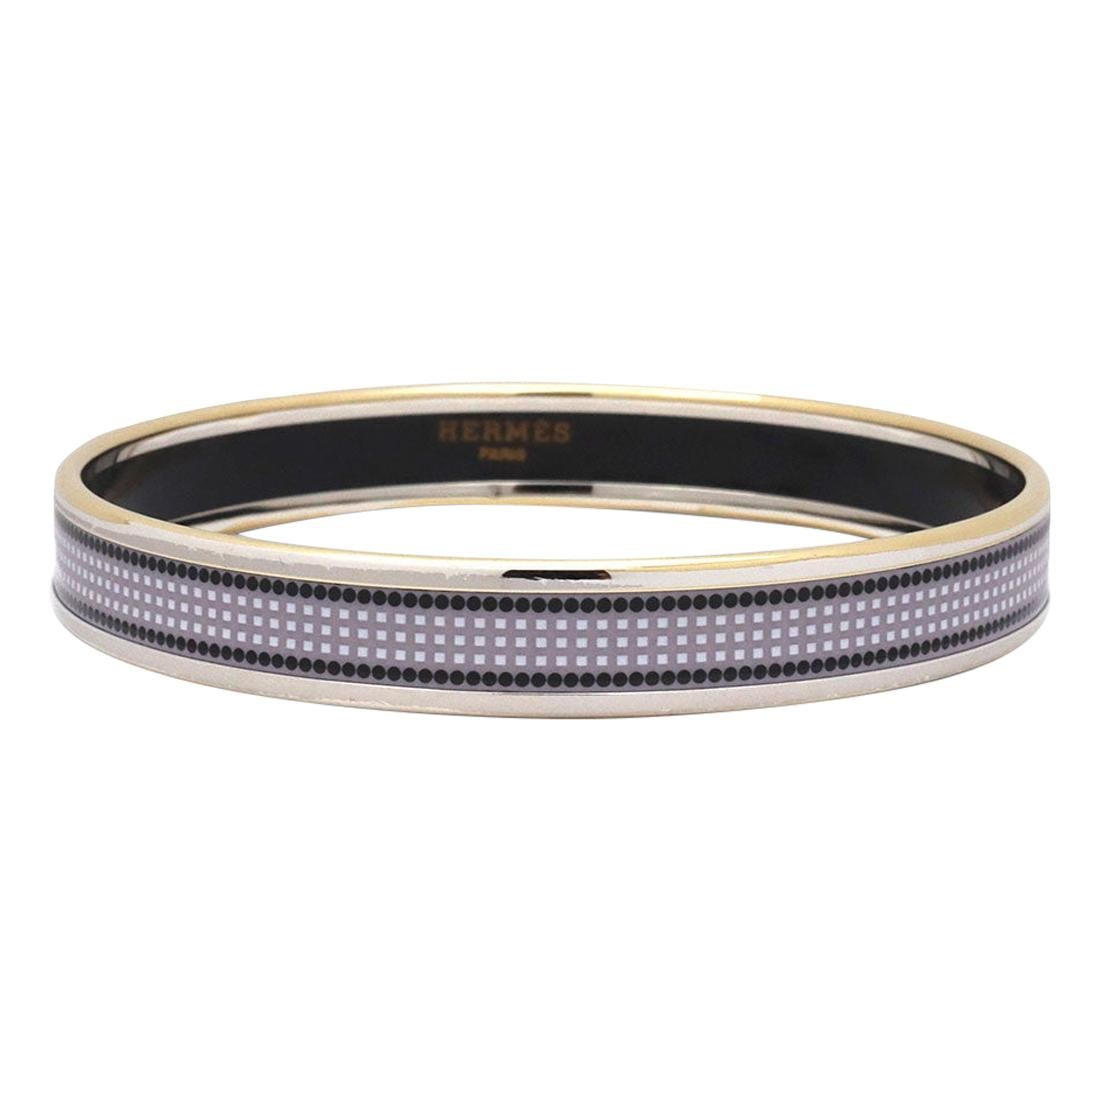 Hermes Paris Dotted Abstract Enamel Bangle